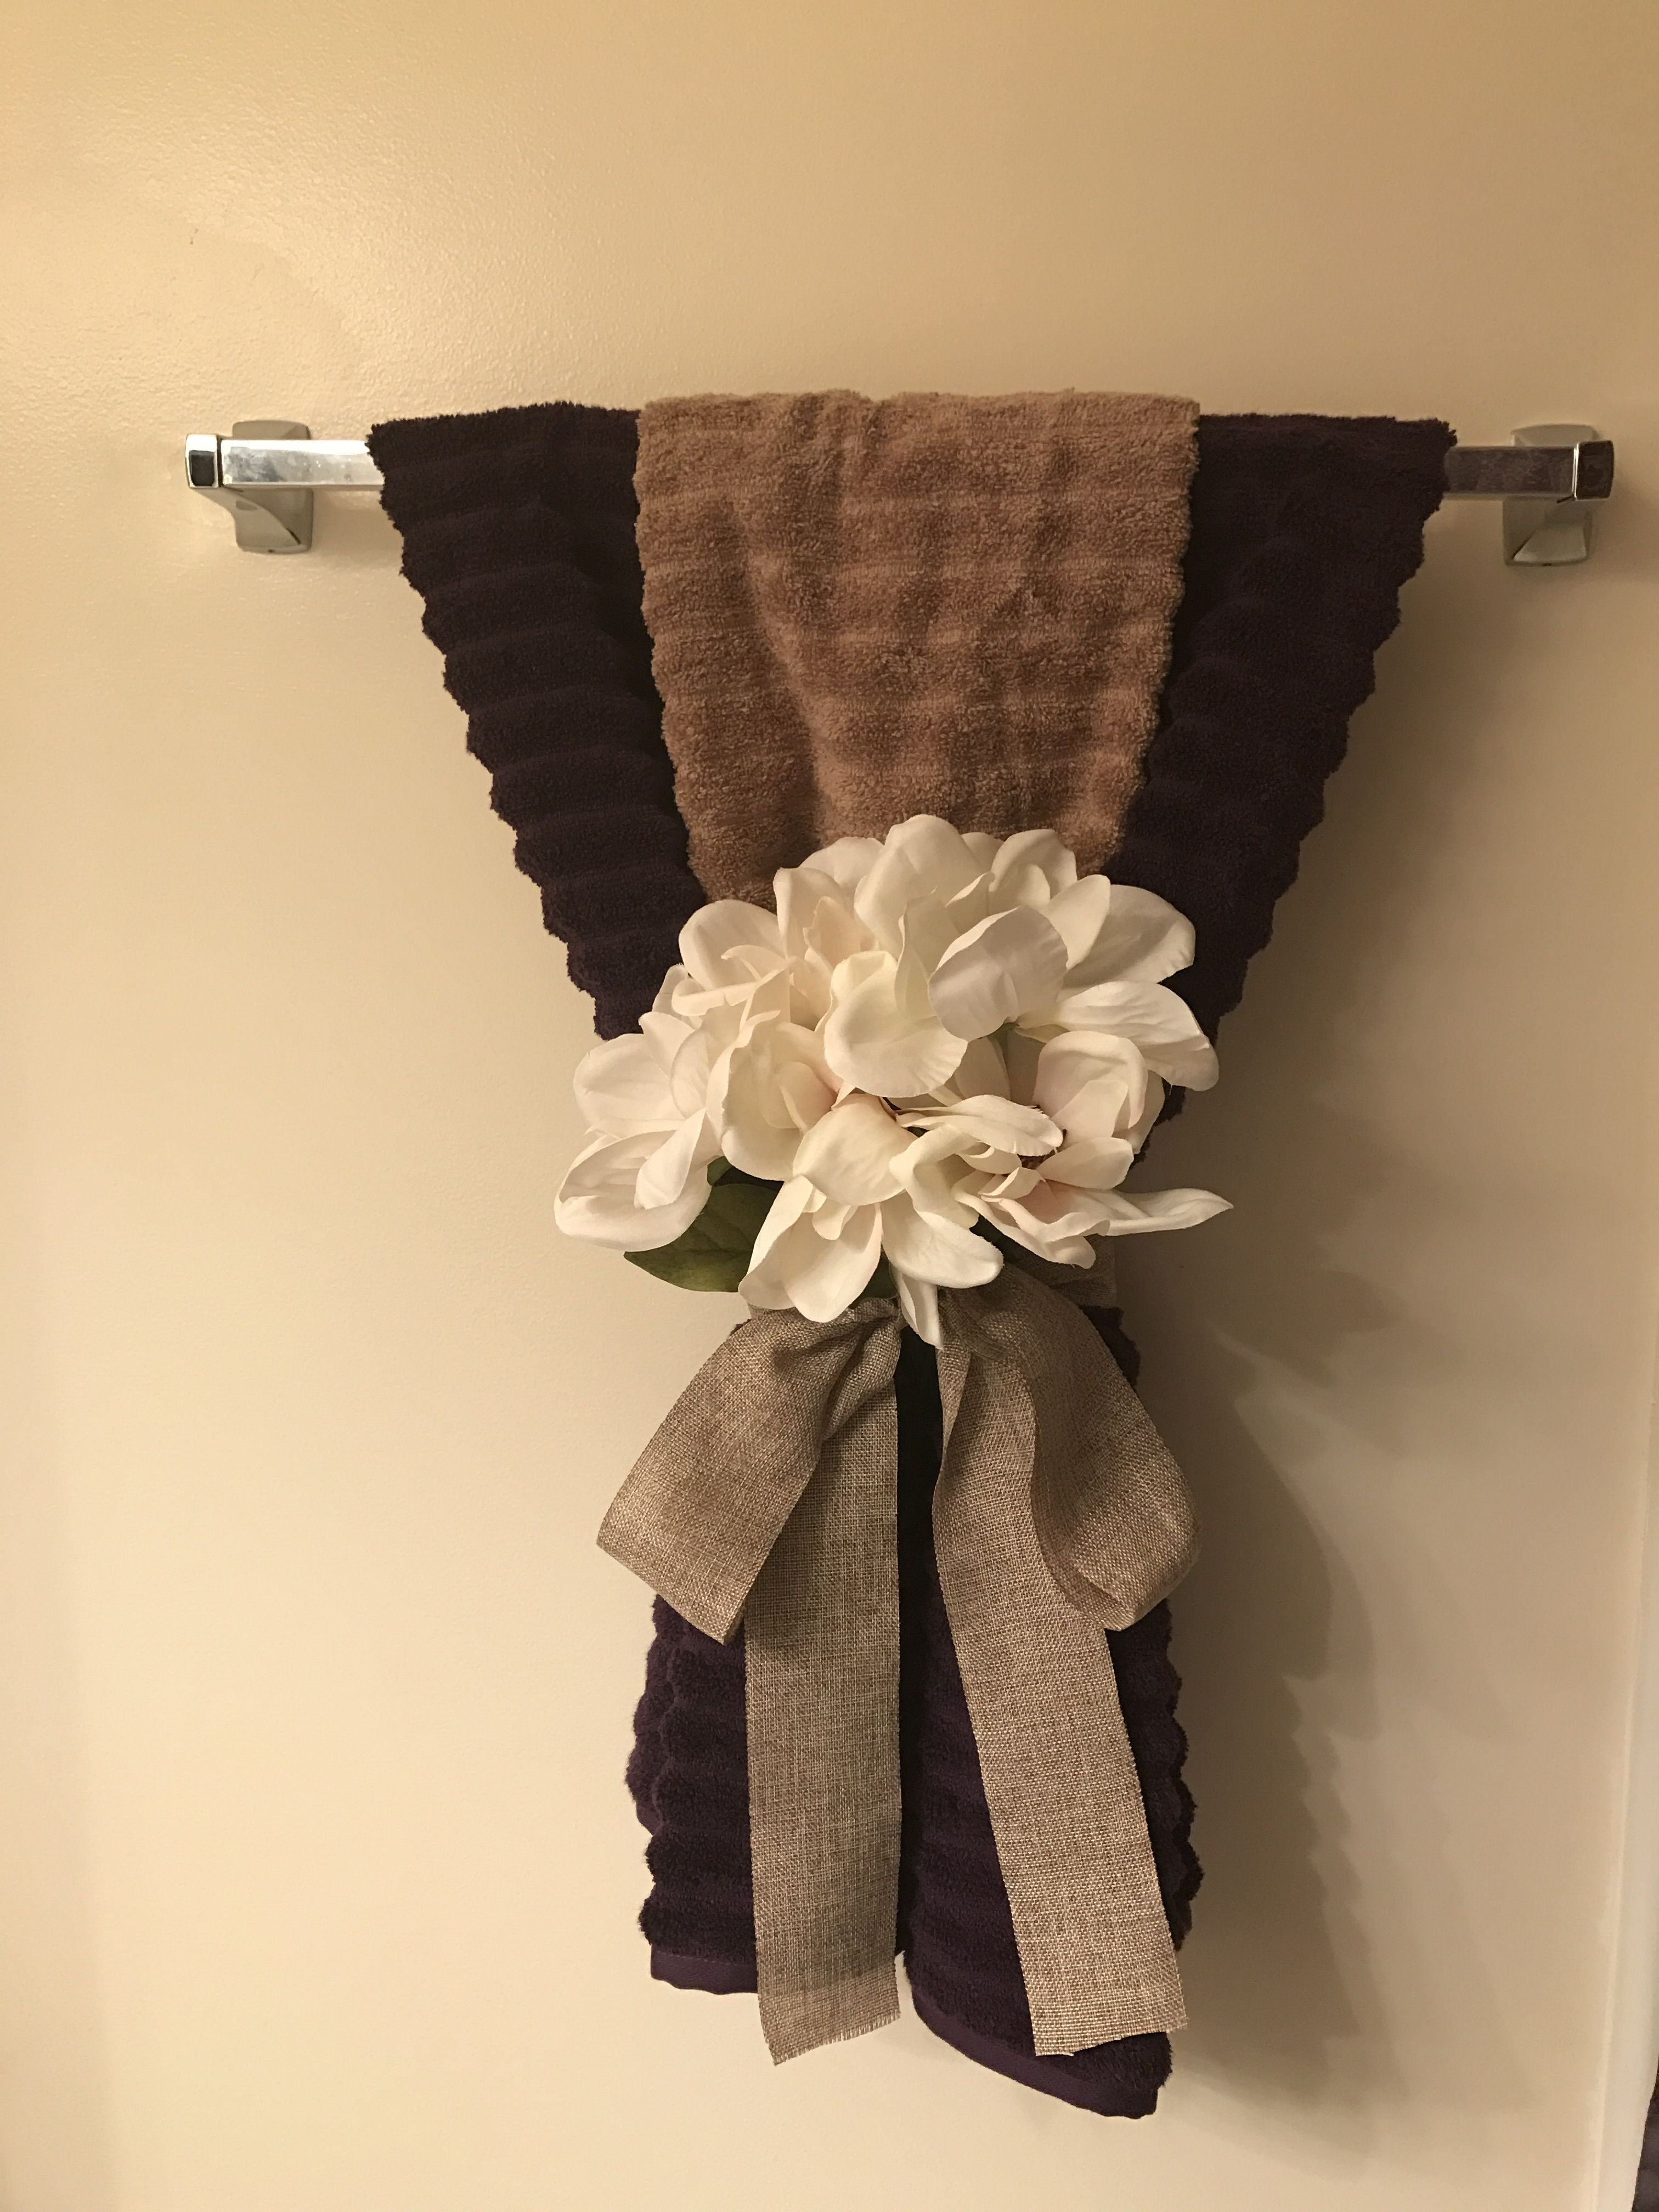 Towel Decoration for Bathroom Beautiful Decorating with Bathroom towels